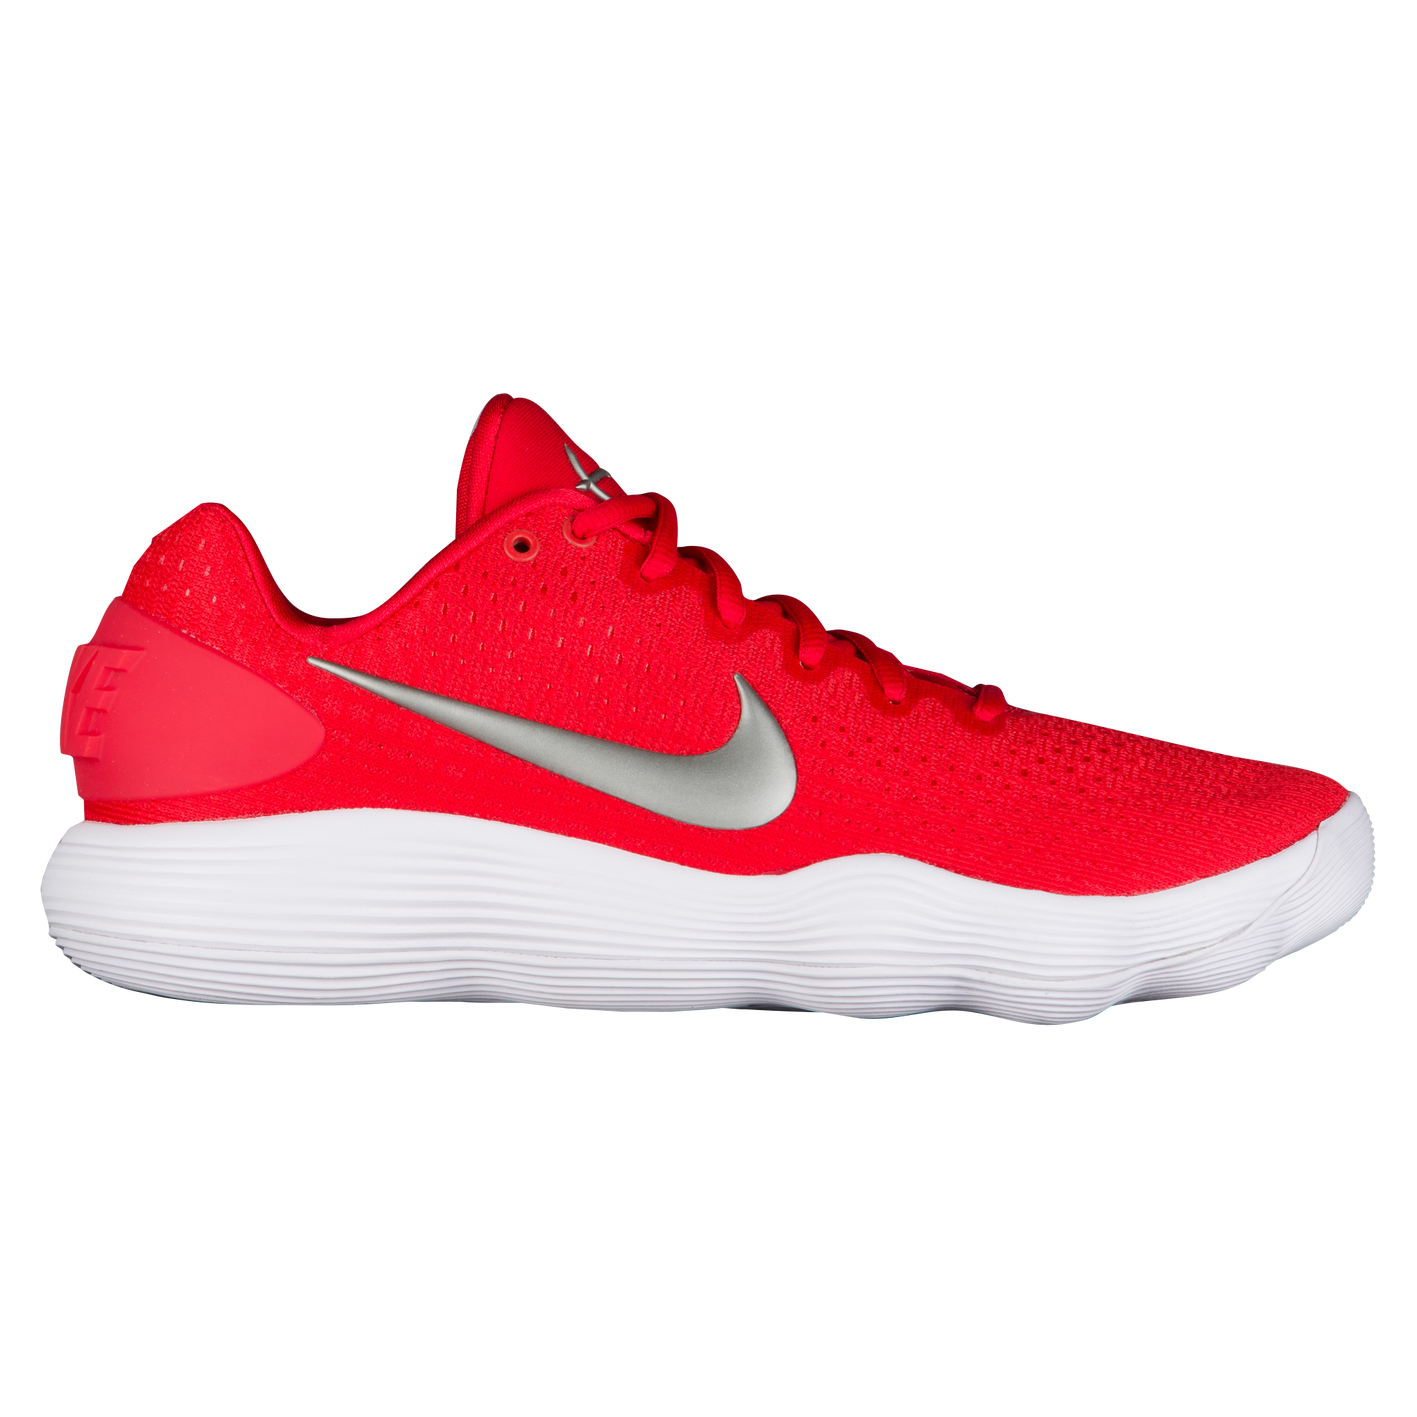 34696f25ad56 Nike React Hyperdunk 2017 Low - Men s - Basketball - Shoes ...